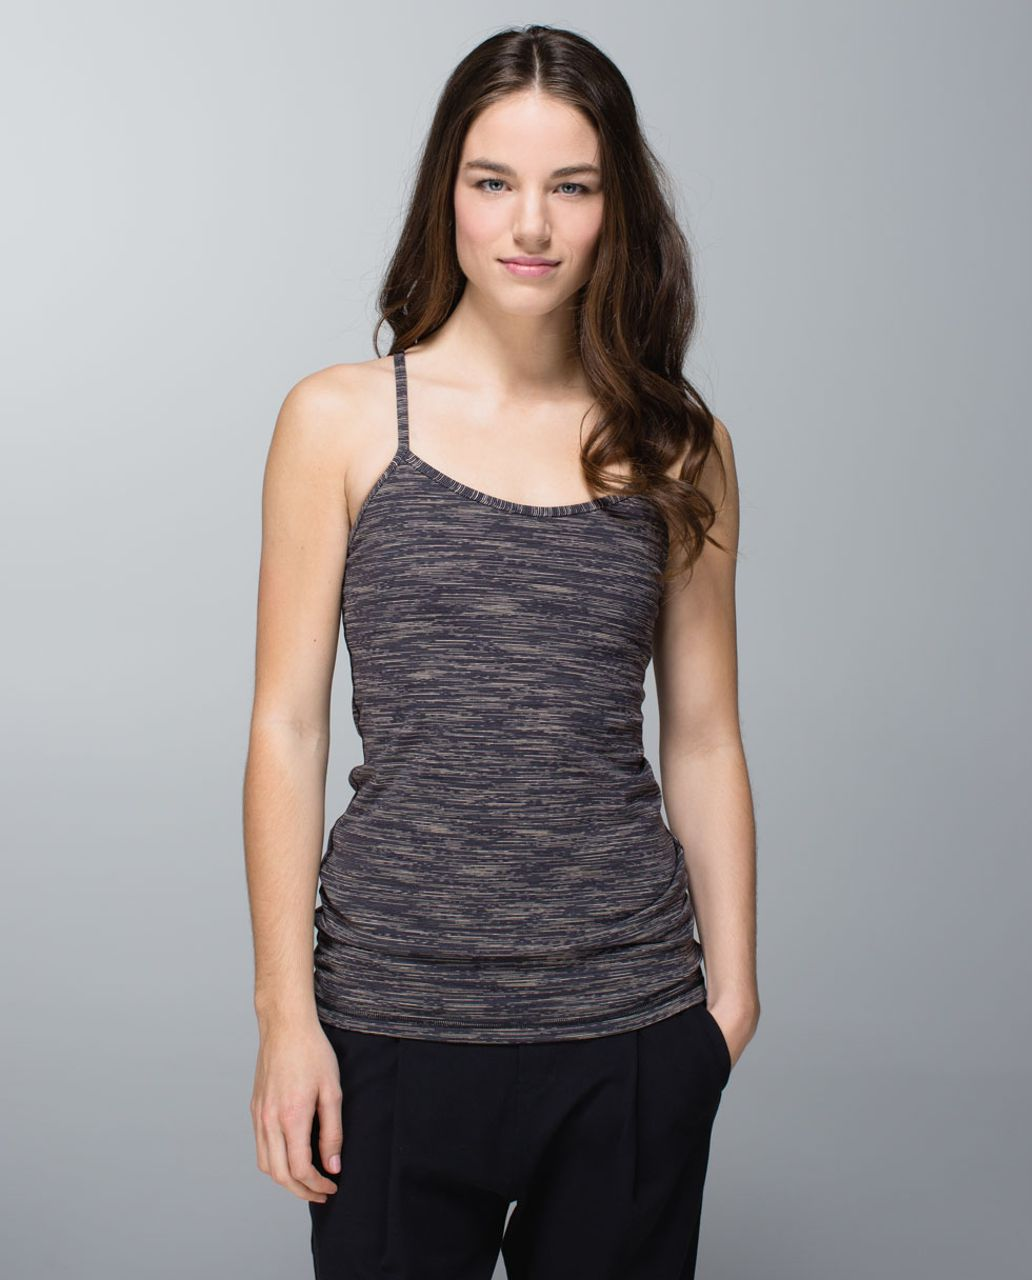 Lululemon Power Y Tank *Luon - Wee Are From Space Black Cashew